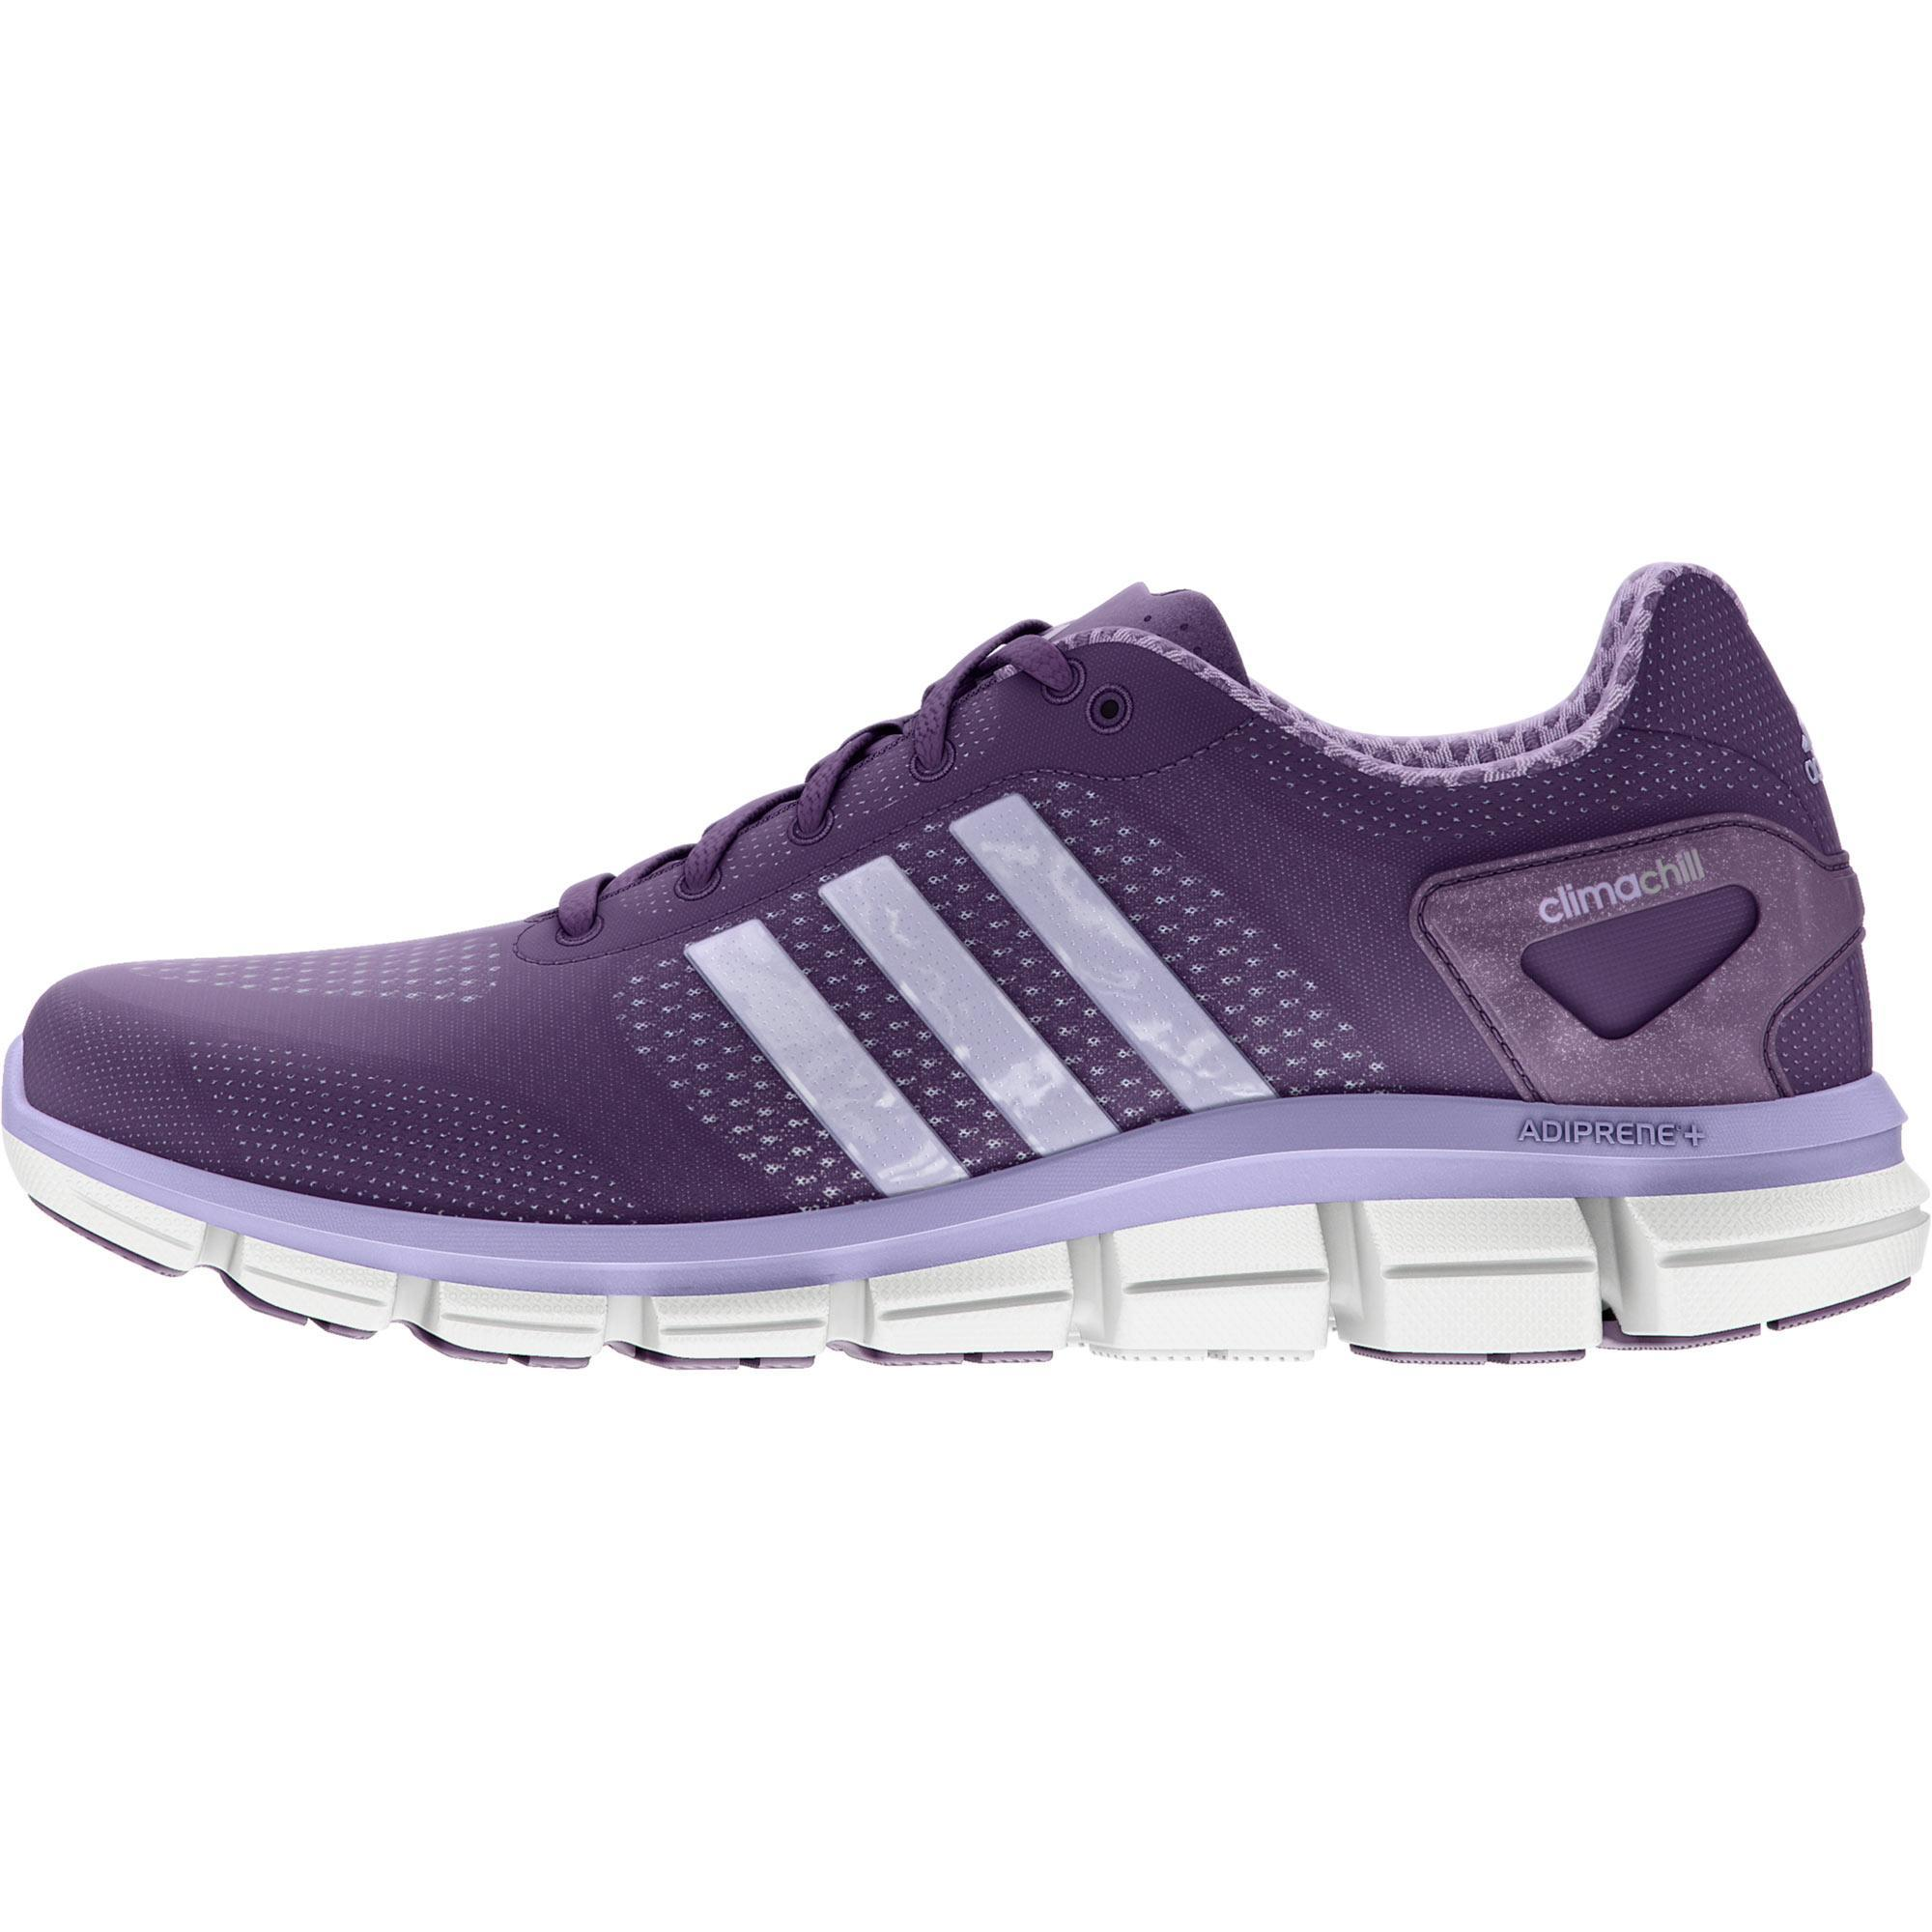 the best attitude 490d0 1227f Adidas Womens ClimaCool Ride Running Shoes - Tribe Purple - Tennisnuts.com